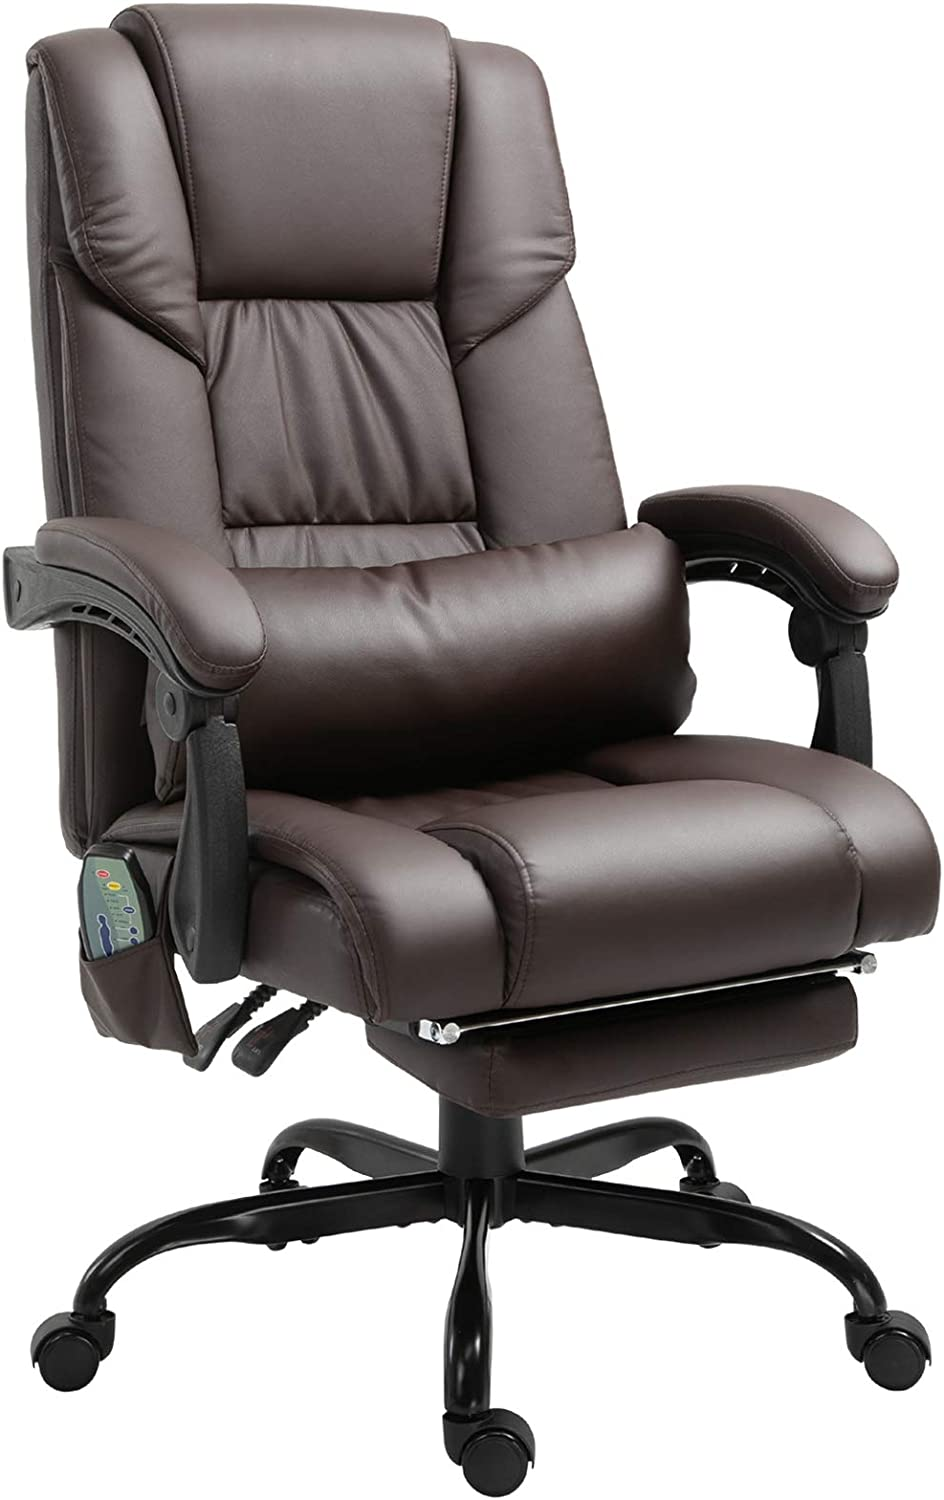 Vinsetto High Back Massage Cheap sale Office NEW Chair Vibrat Desk 6-Point with